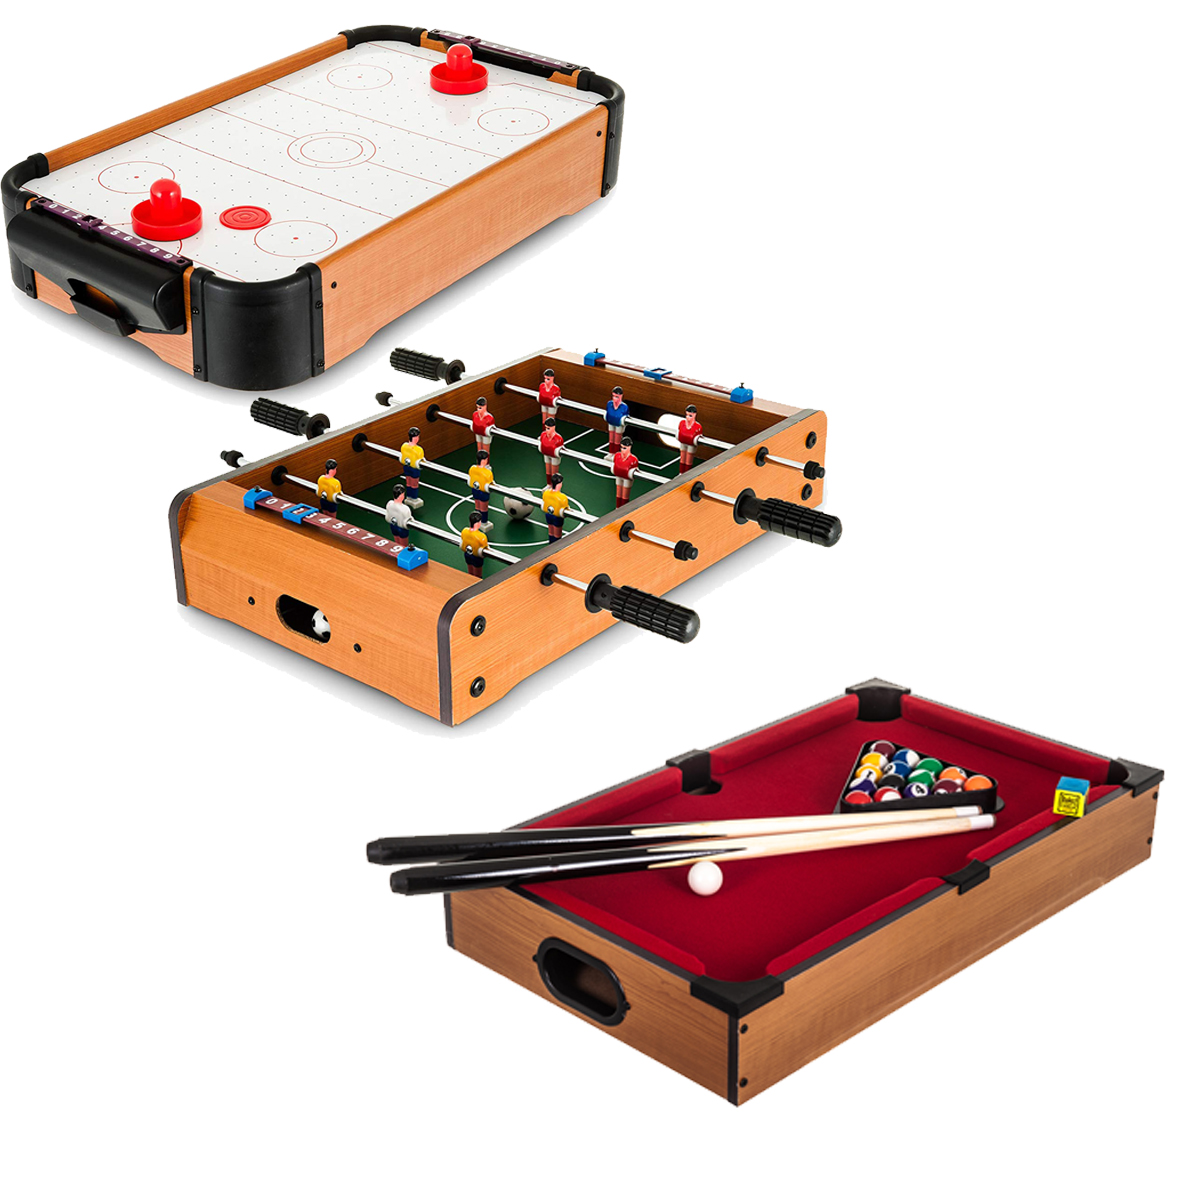 Marvelous Details About Mini Table Top Pool Air Hockey Football Foosball Soccer Family Games Toy Gift Download Free Architecture Designs Lectubocepmadebymaigaardcom